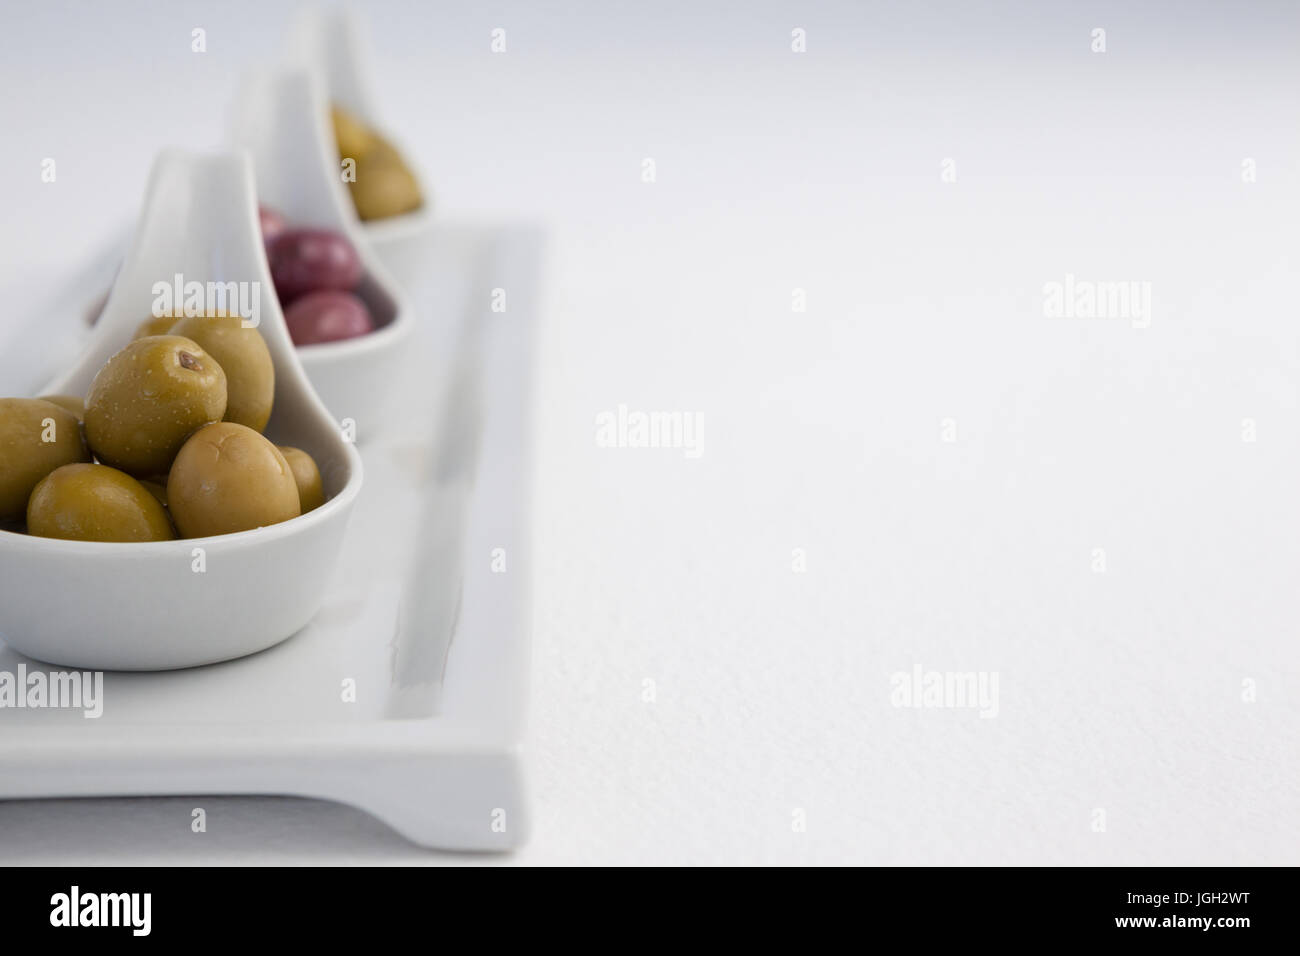 Close up of black and green olives in containers on tray against white background - Stock Image